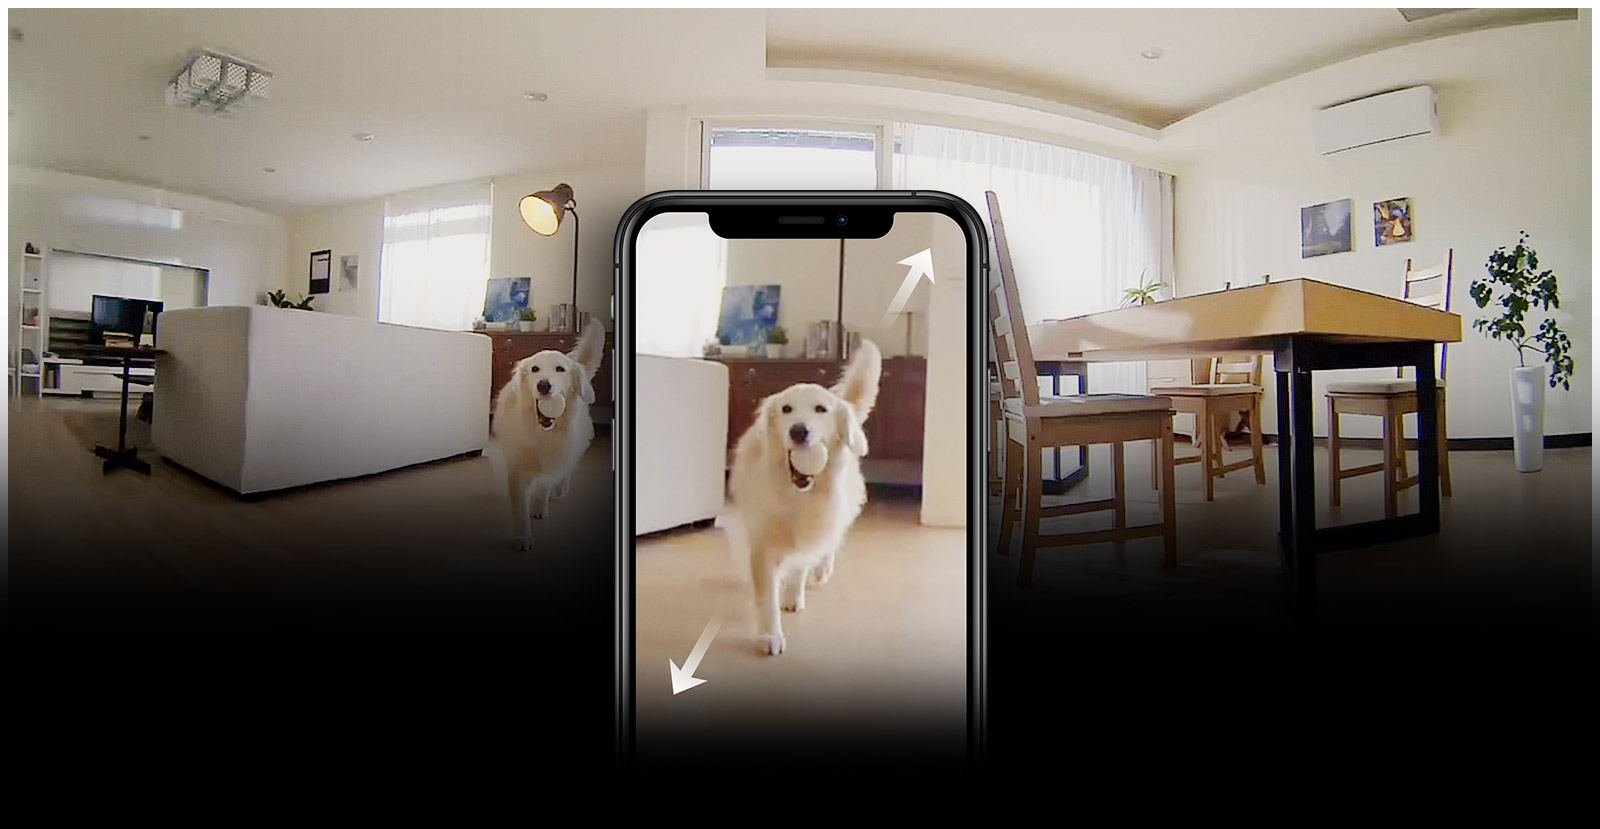 Phone showing security camera footage of pet dog and zooming in